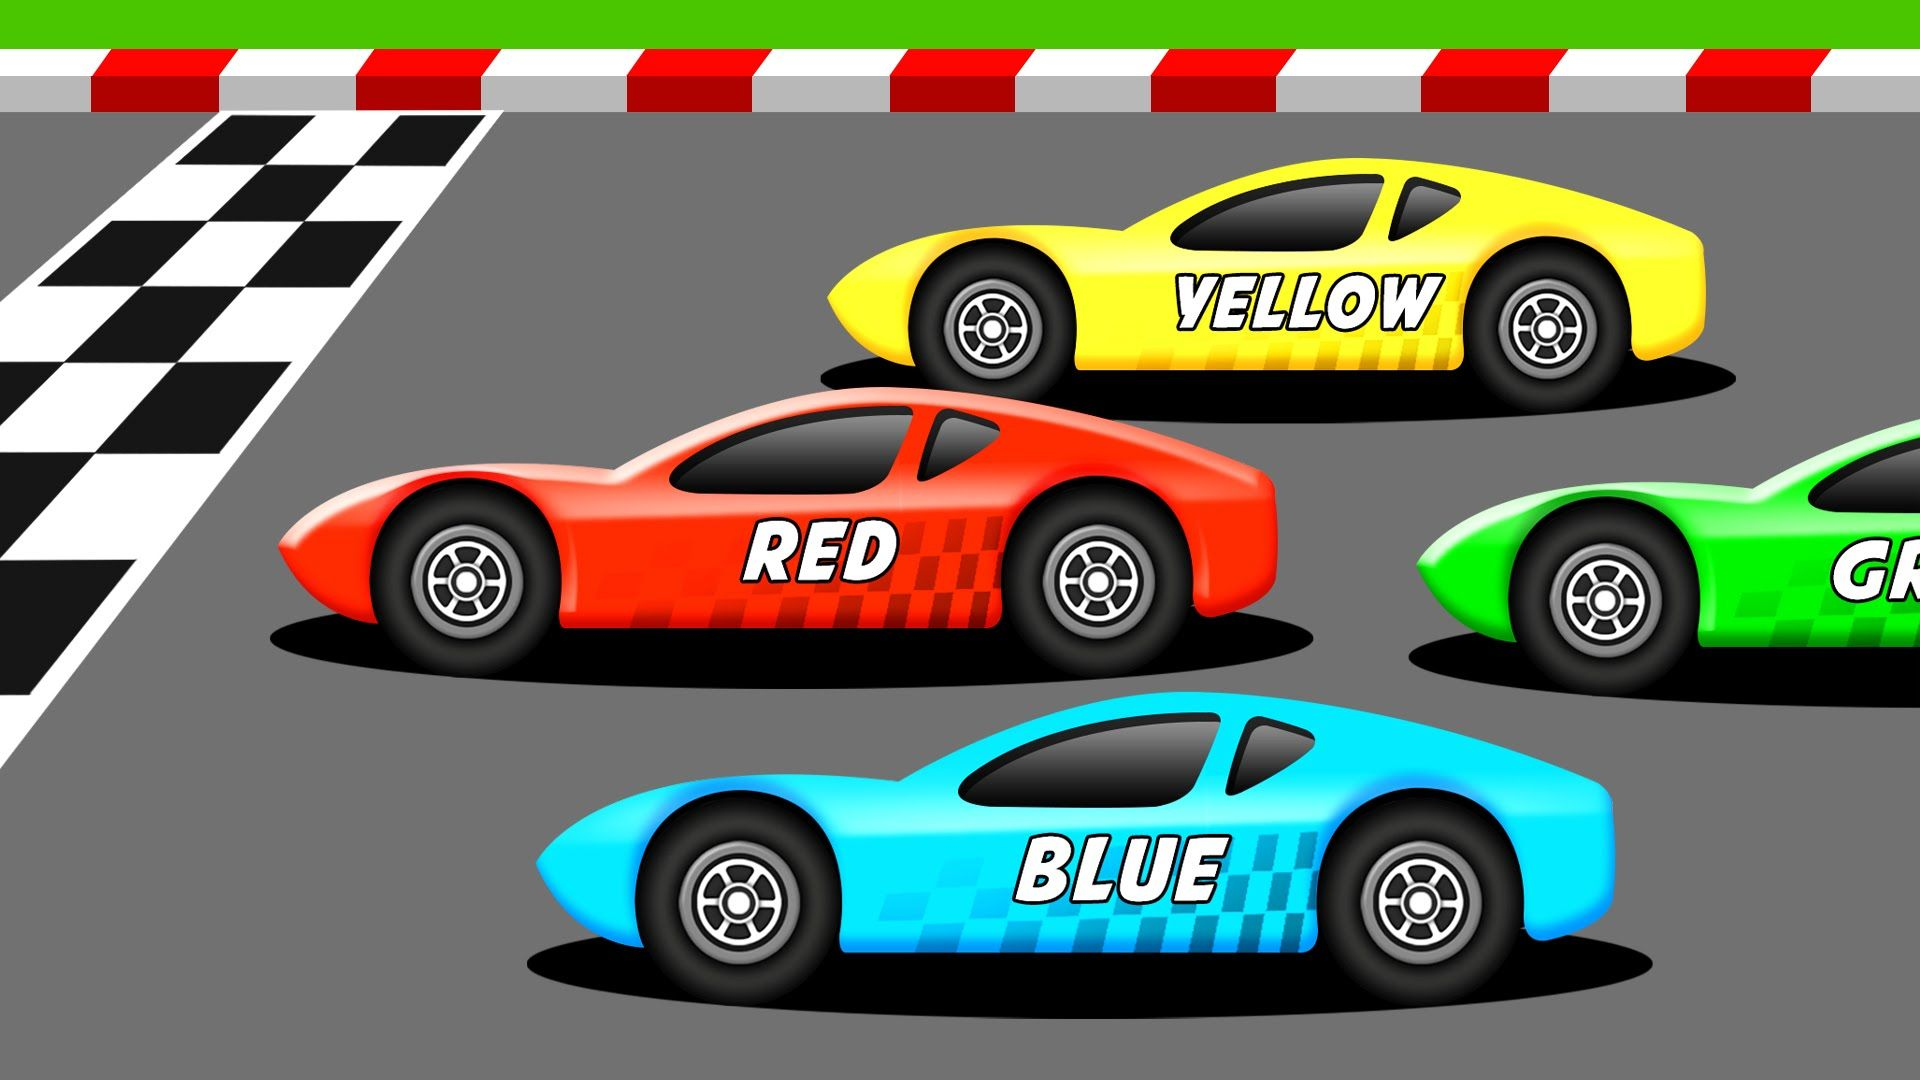 Learn The Colors With Racing Cars Race Cars Kids Police Car Racing